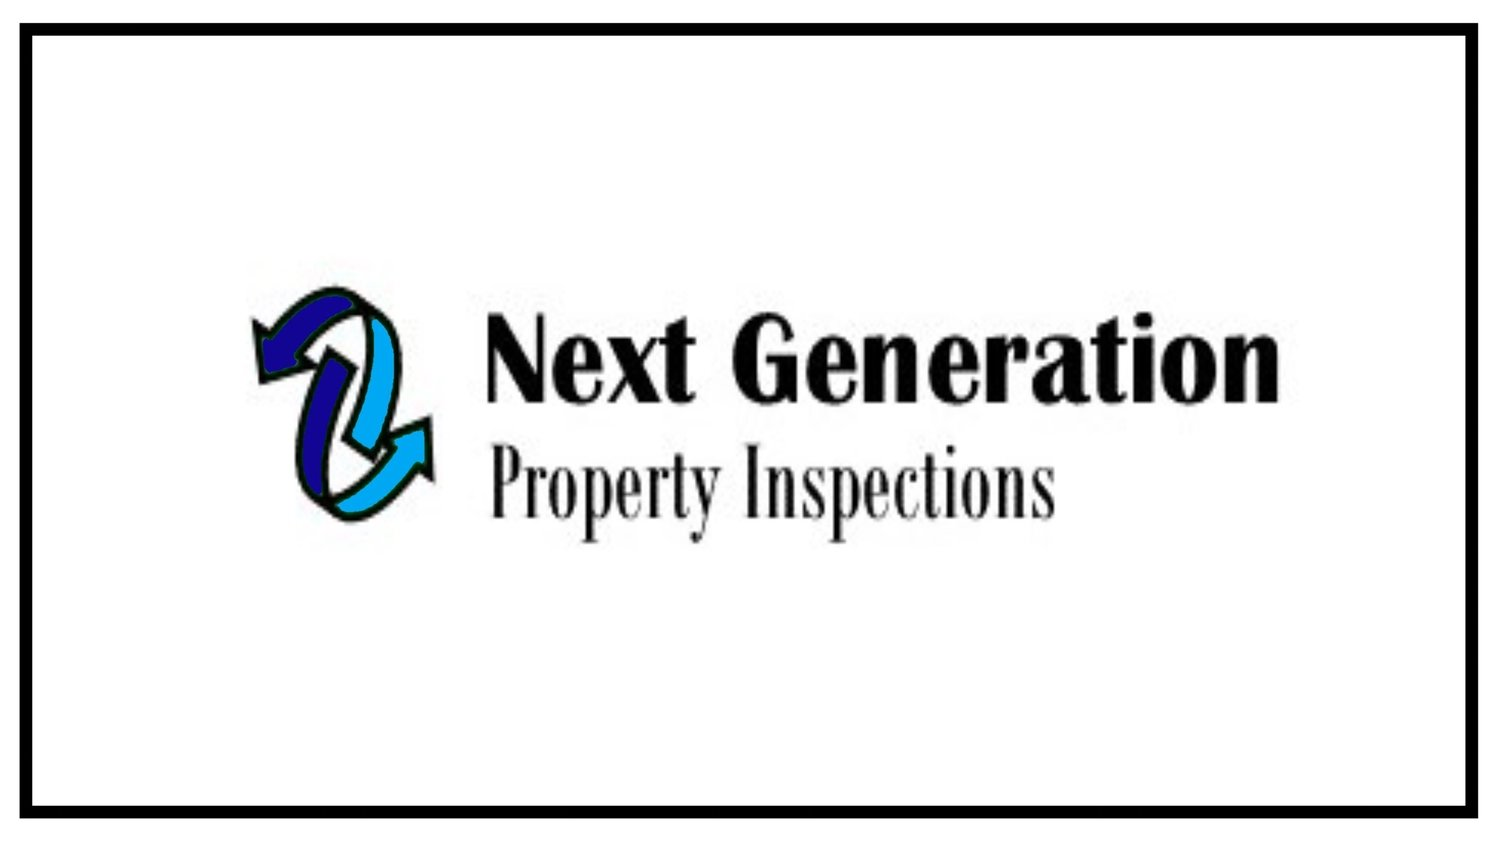 Next Generation Property Inspections